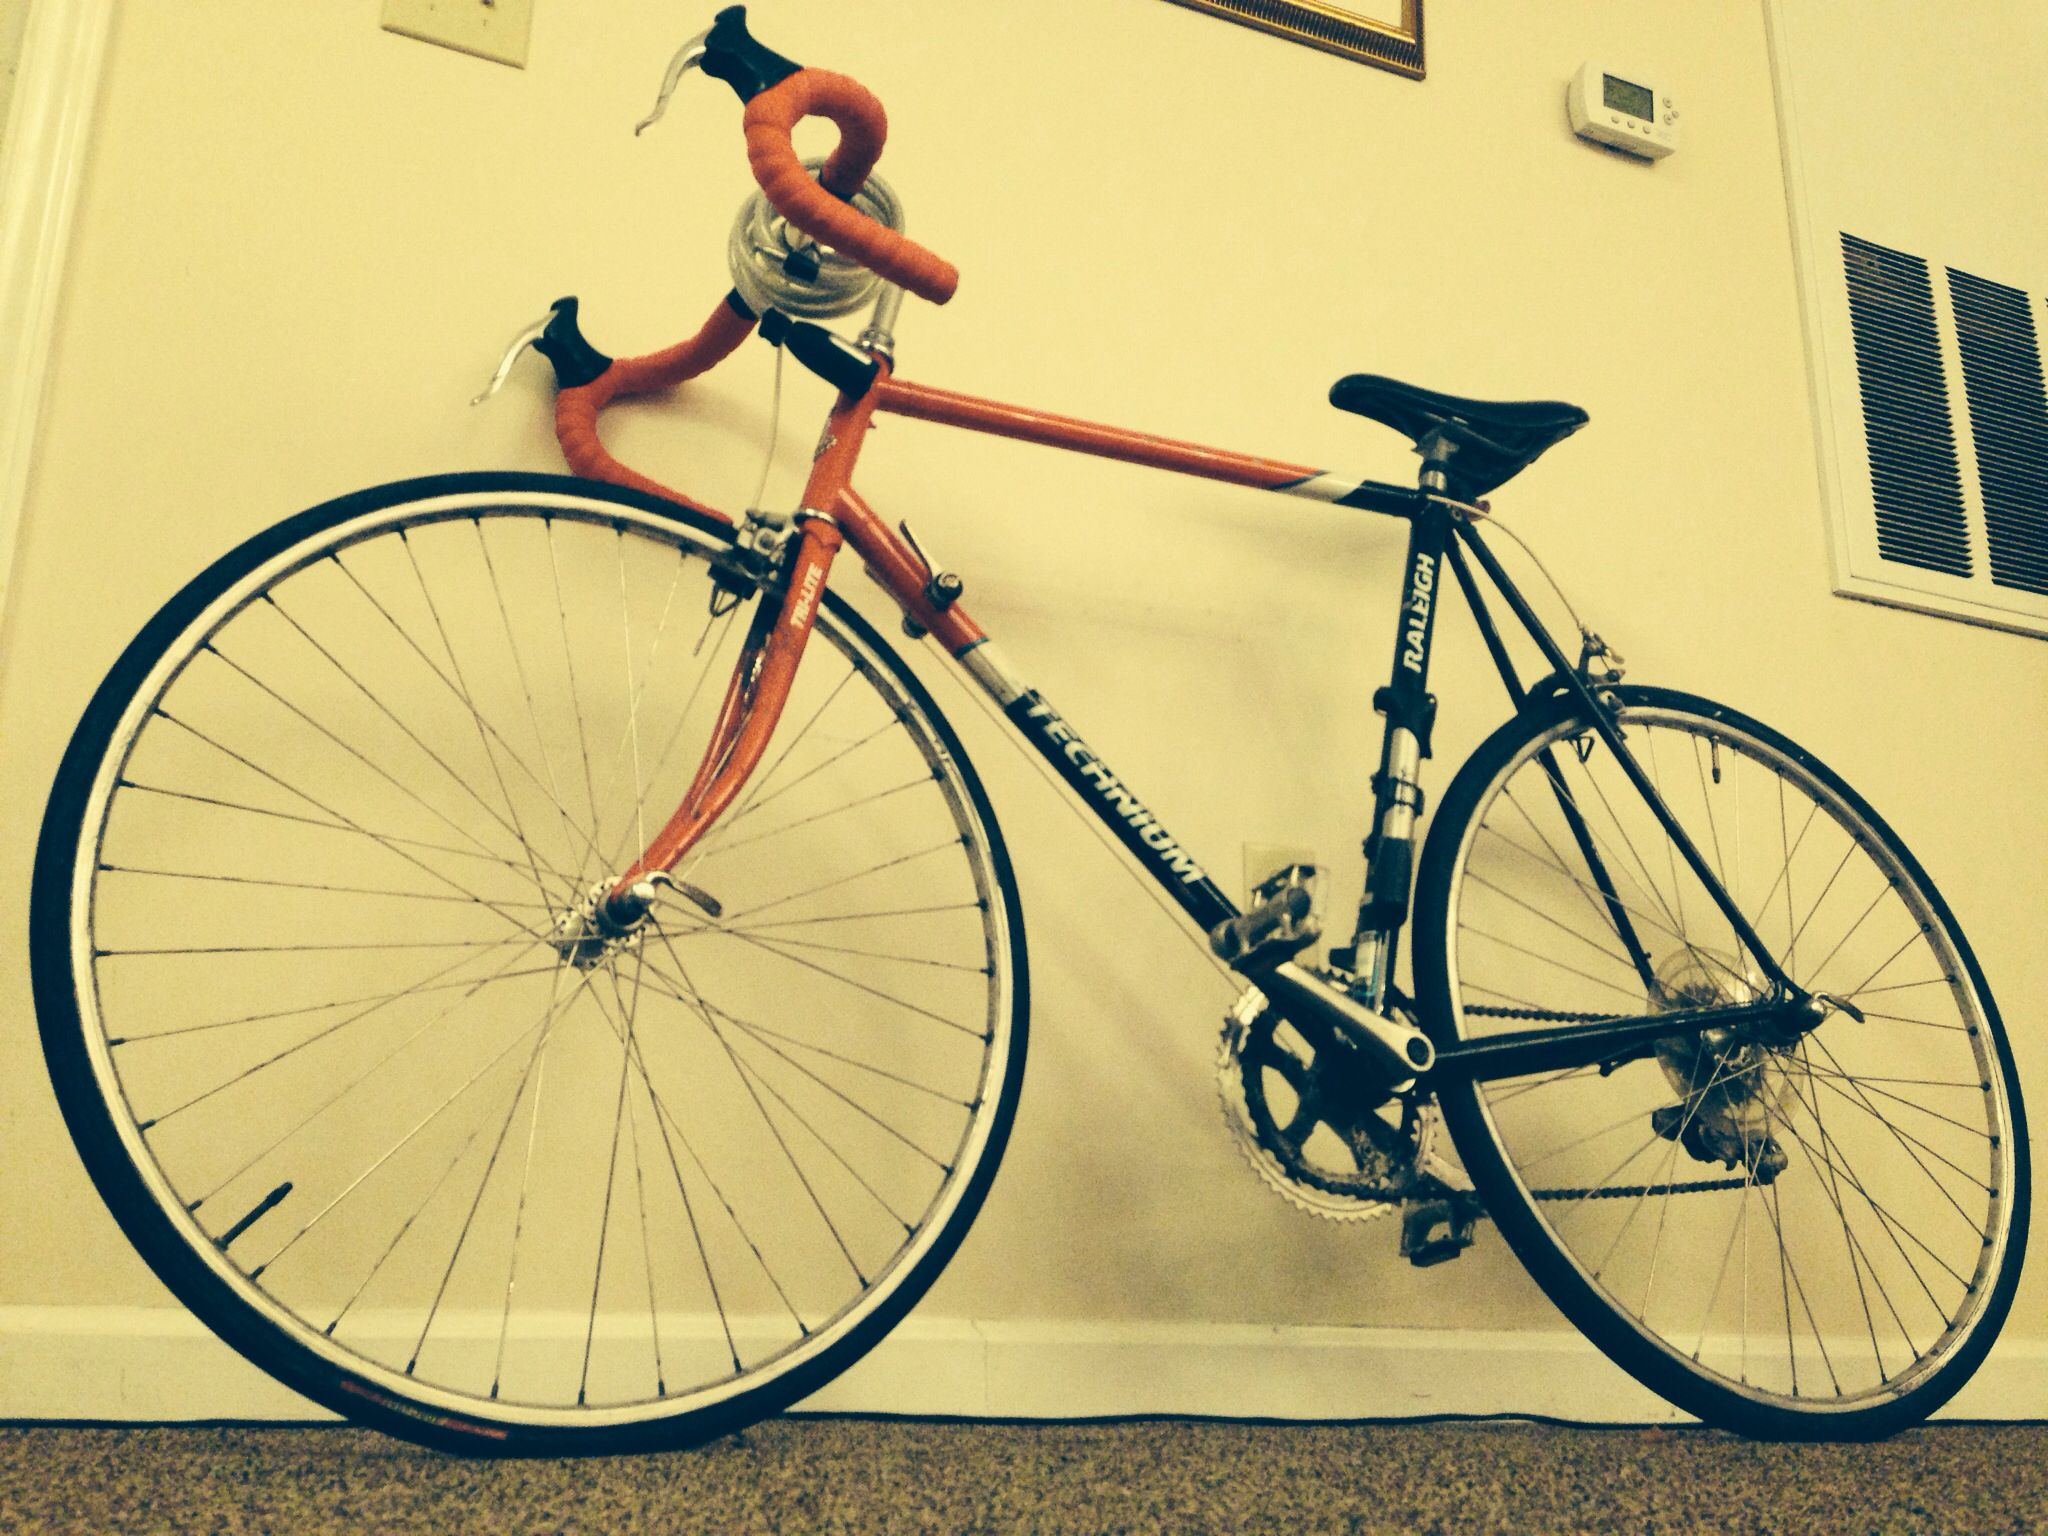 My 1988 Raleigh. I bike this bad boy everyday to class. #raleigh #raleighbike